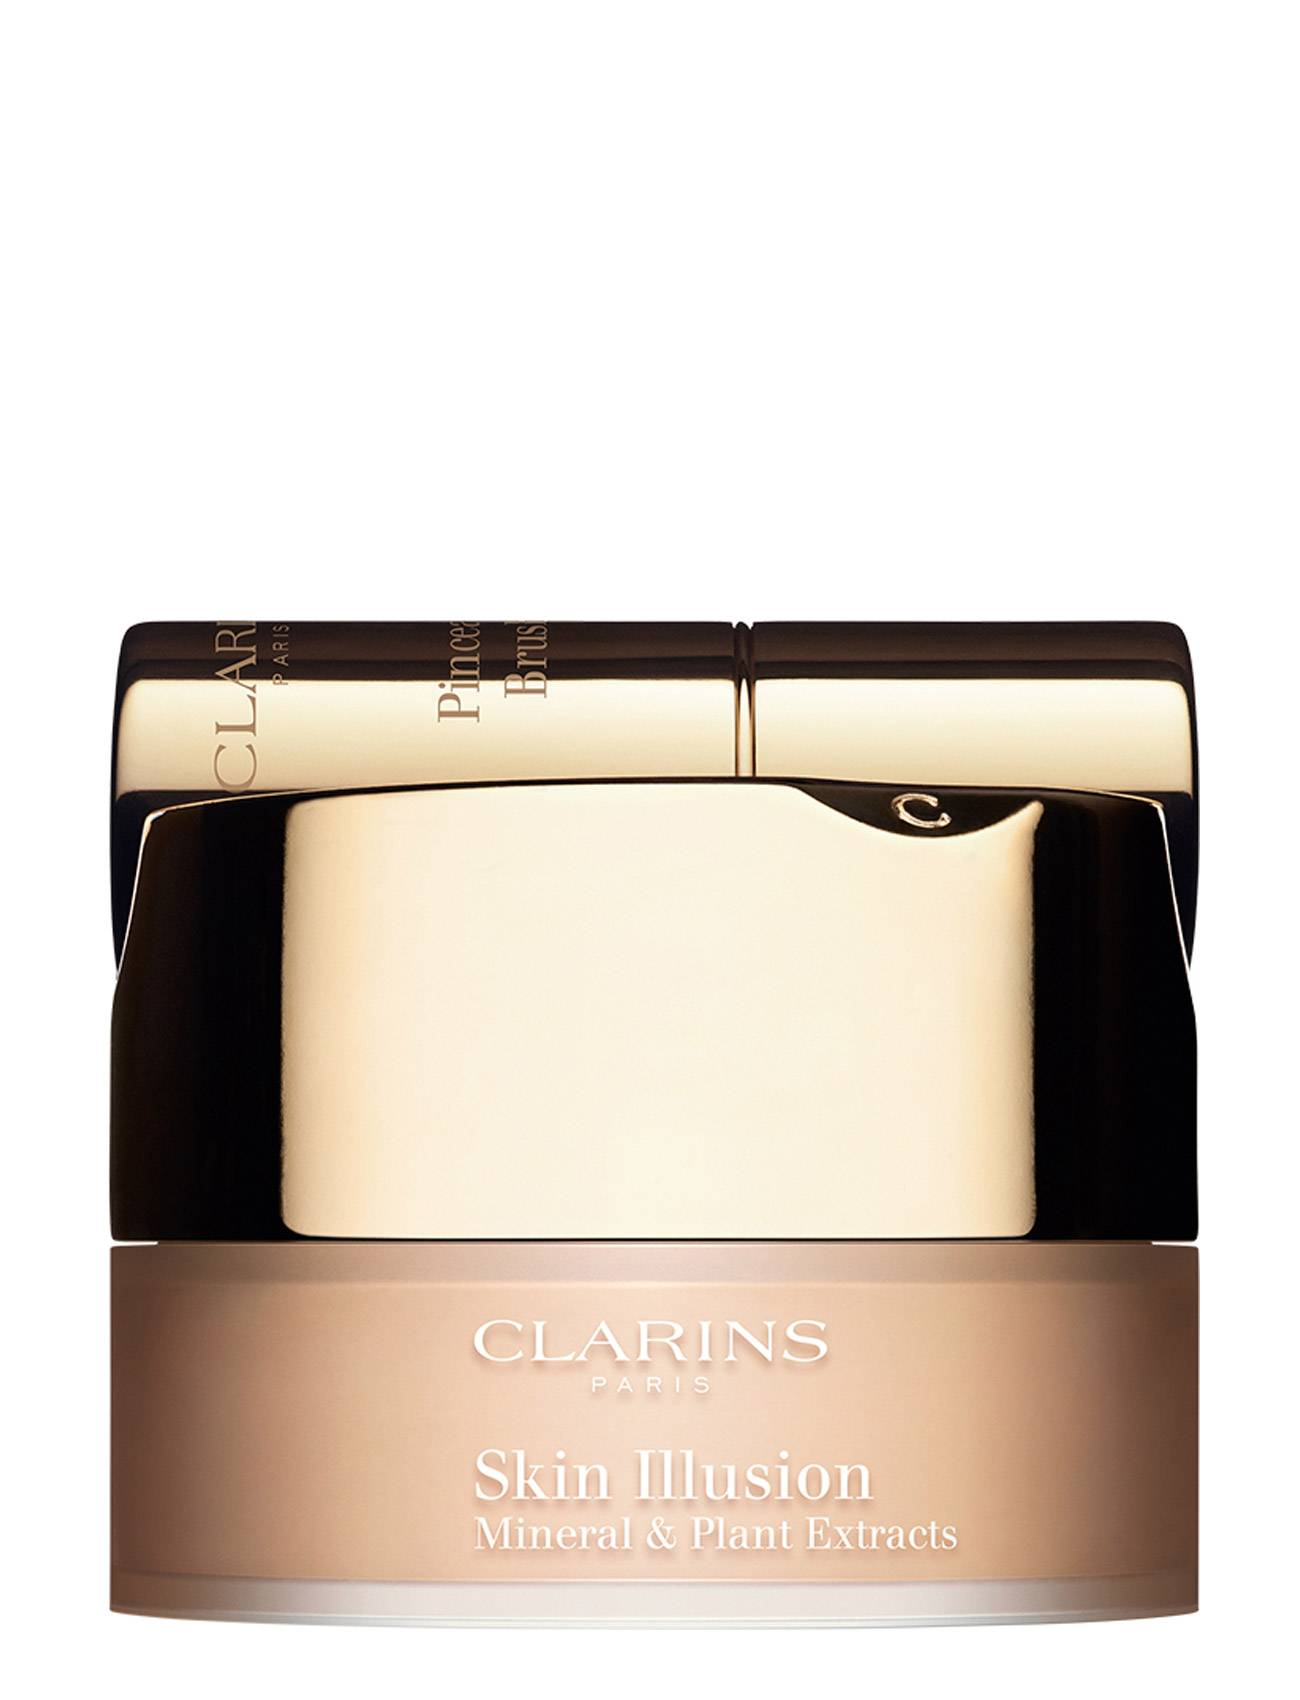 Clarins Skin Illusion Loose Powderfoundation 110 Honey